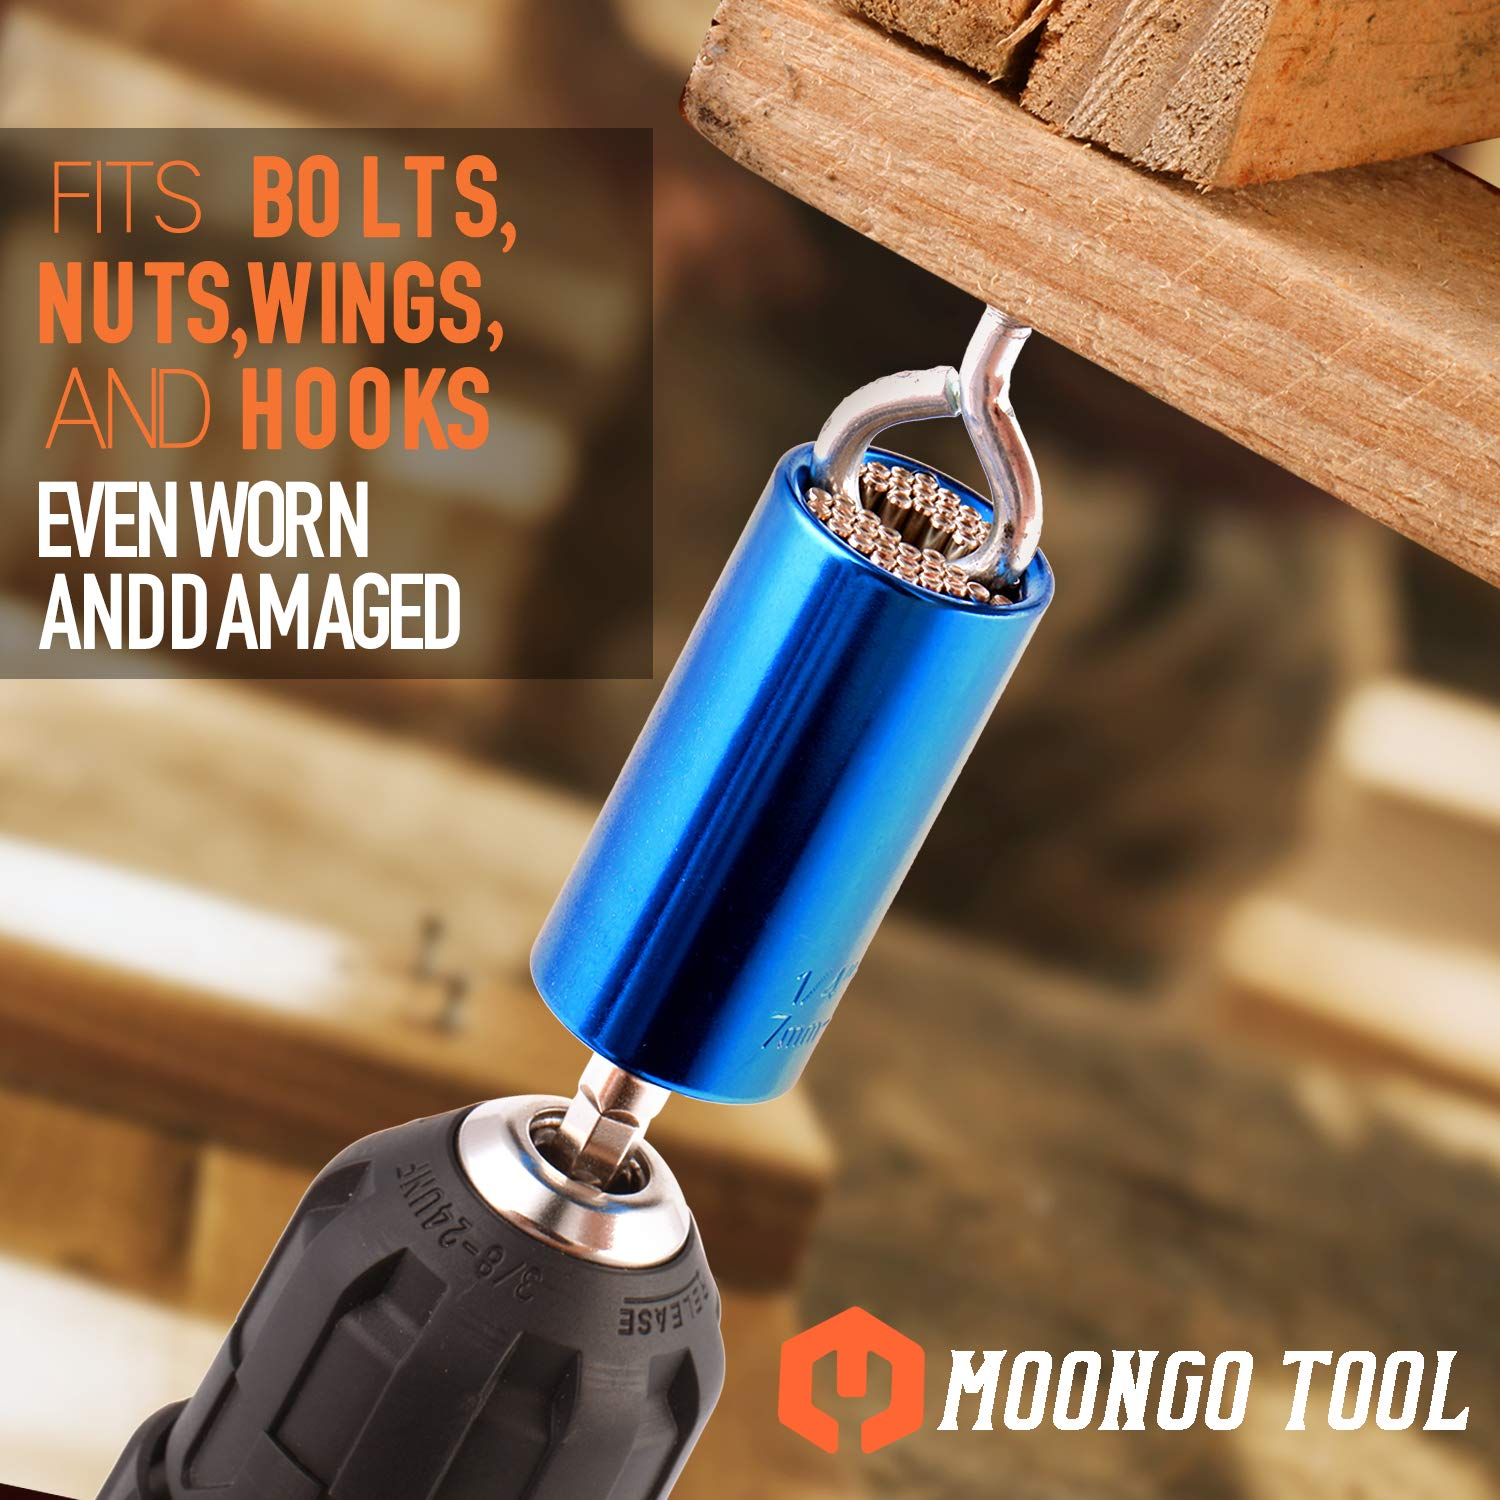 Best Unique Gifts Tools Father Dad Christmas Gifts for Men Him Universal Socket Wrench Power Drill Adapter Universal Sockets By Moongo Tool Boyfriend Husband DIY Handyman Guys